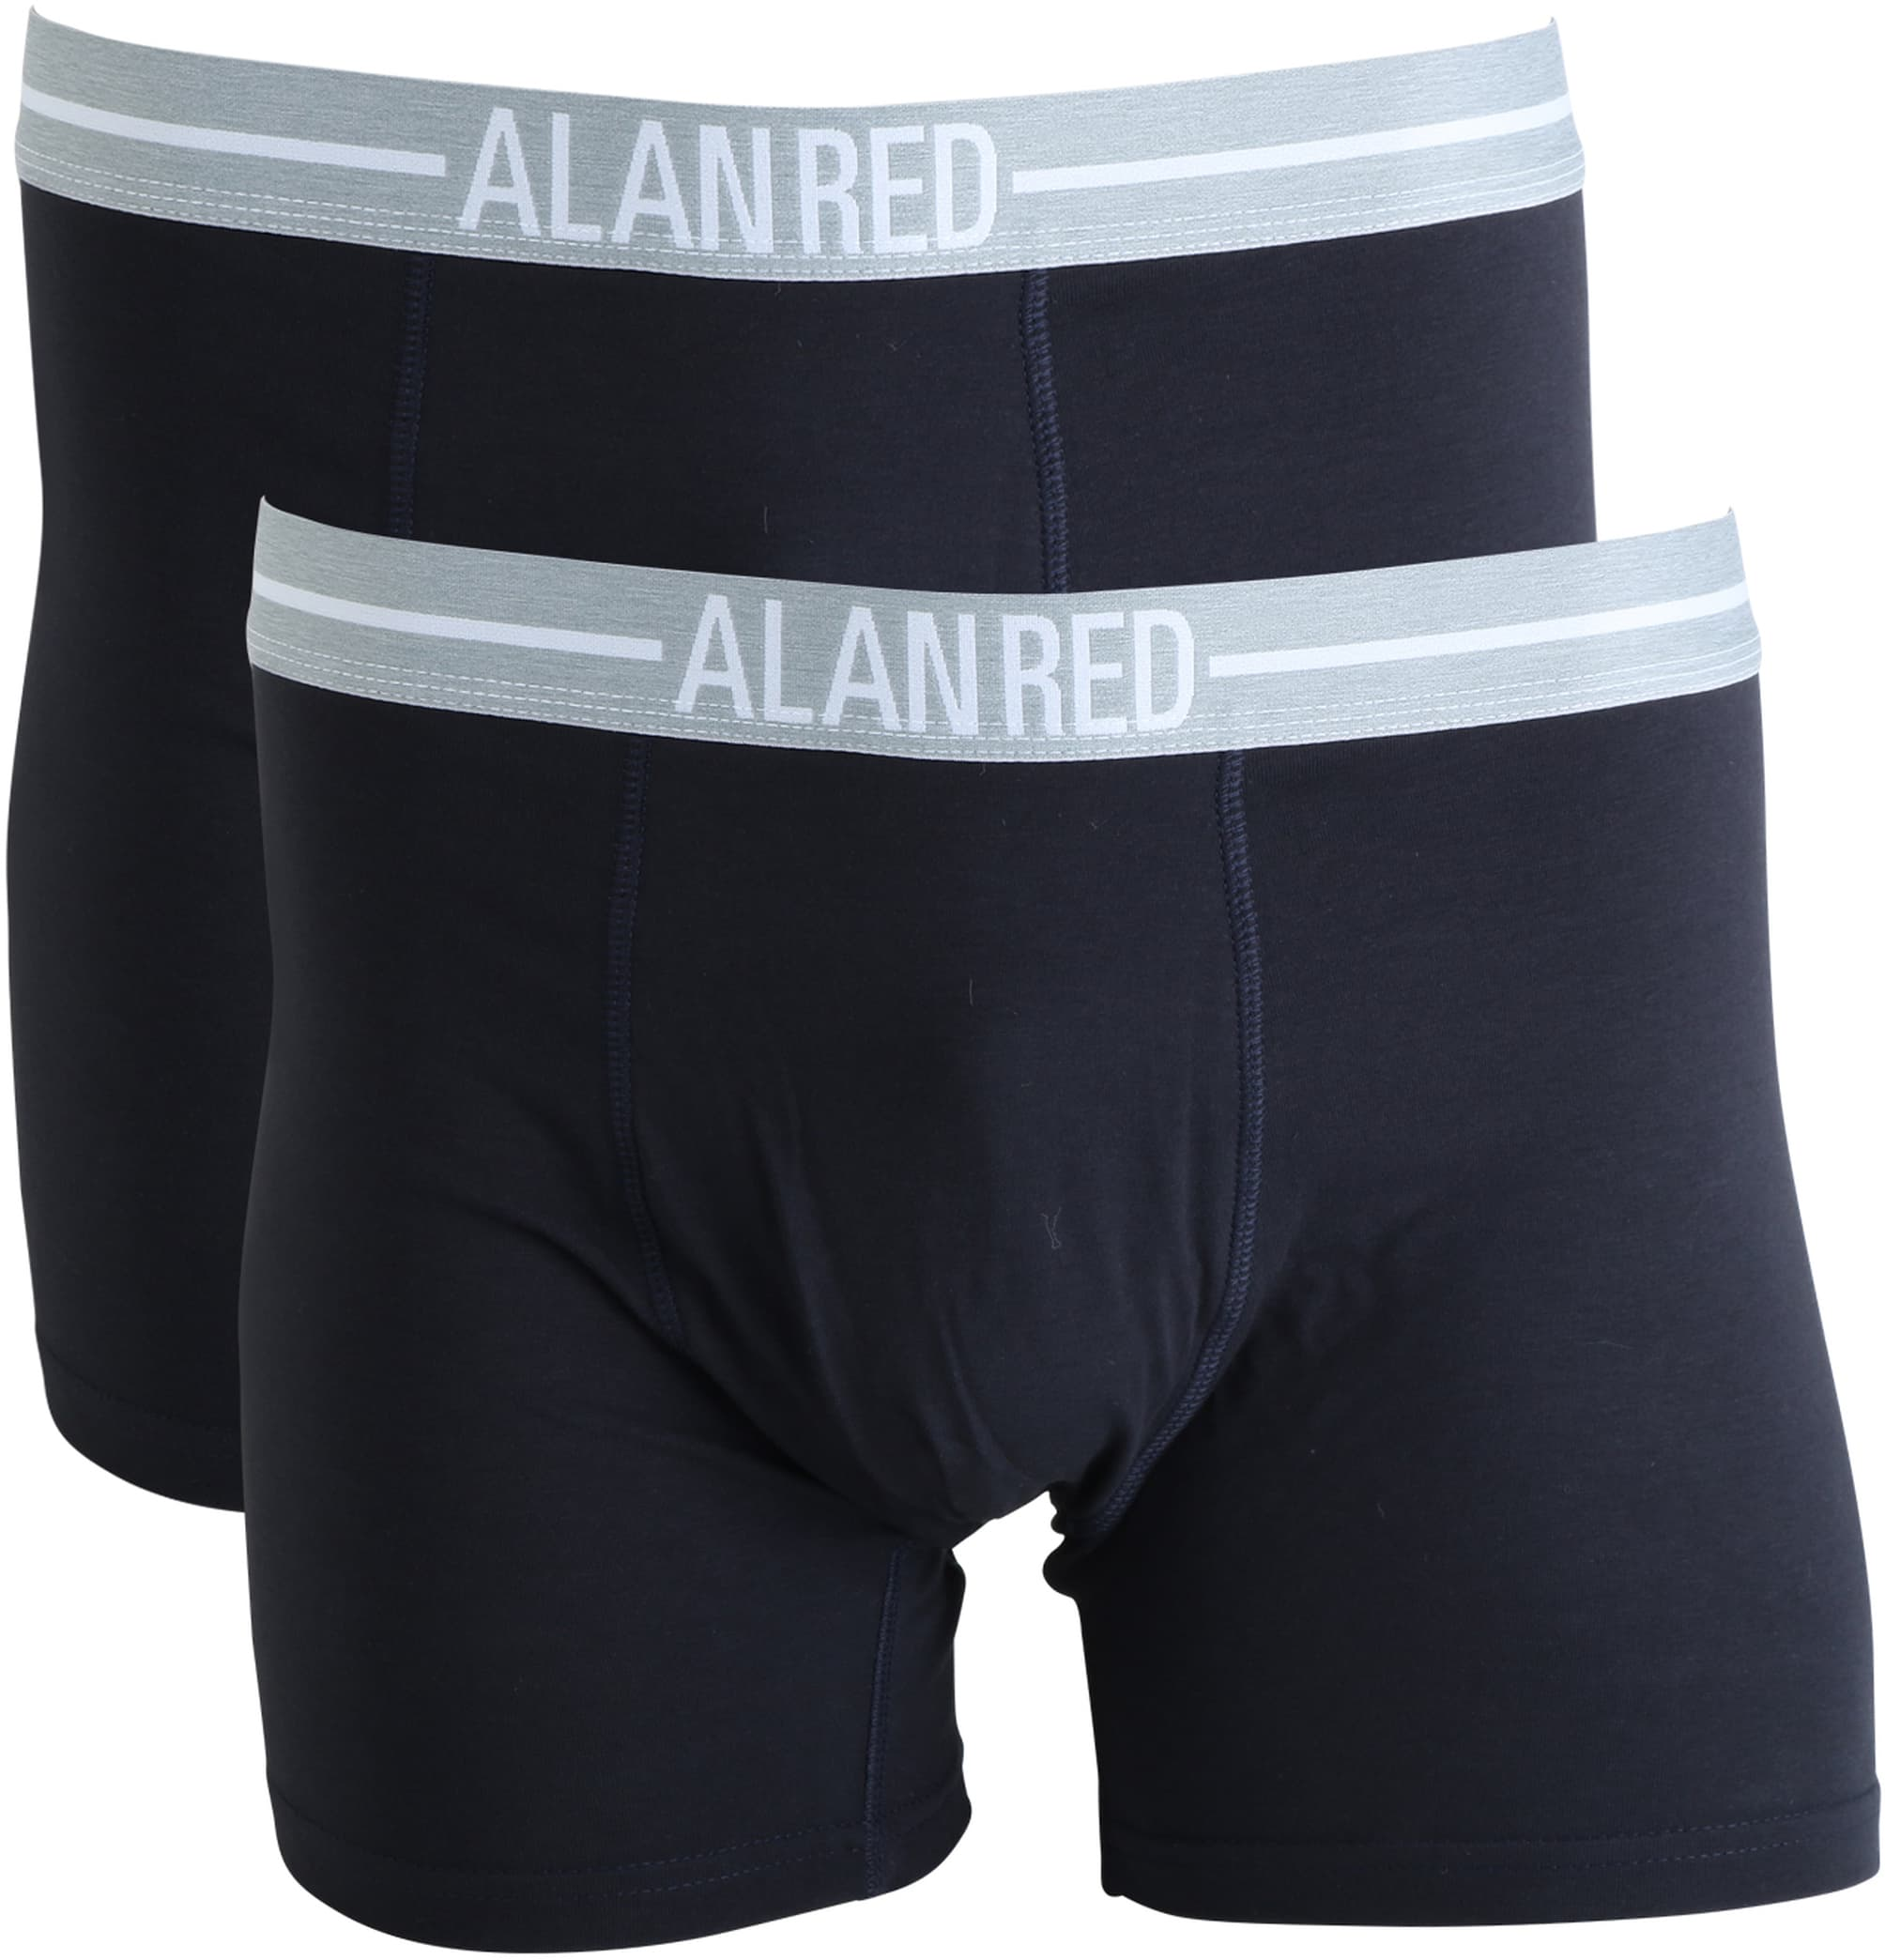 Alan Red Boxer Shorts Navy 2Pack